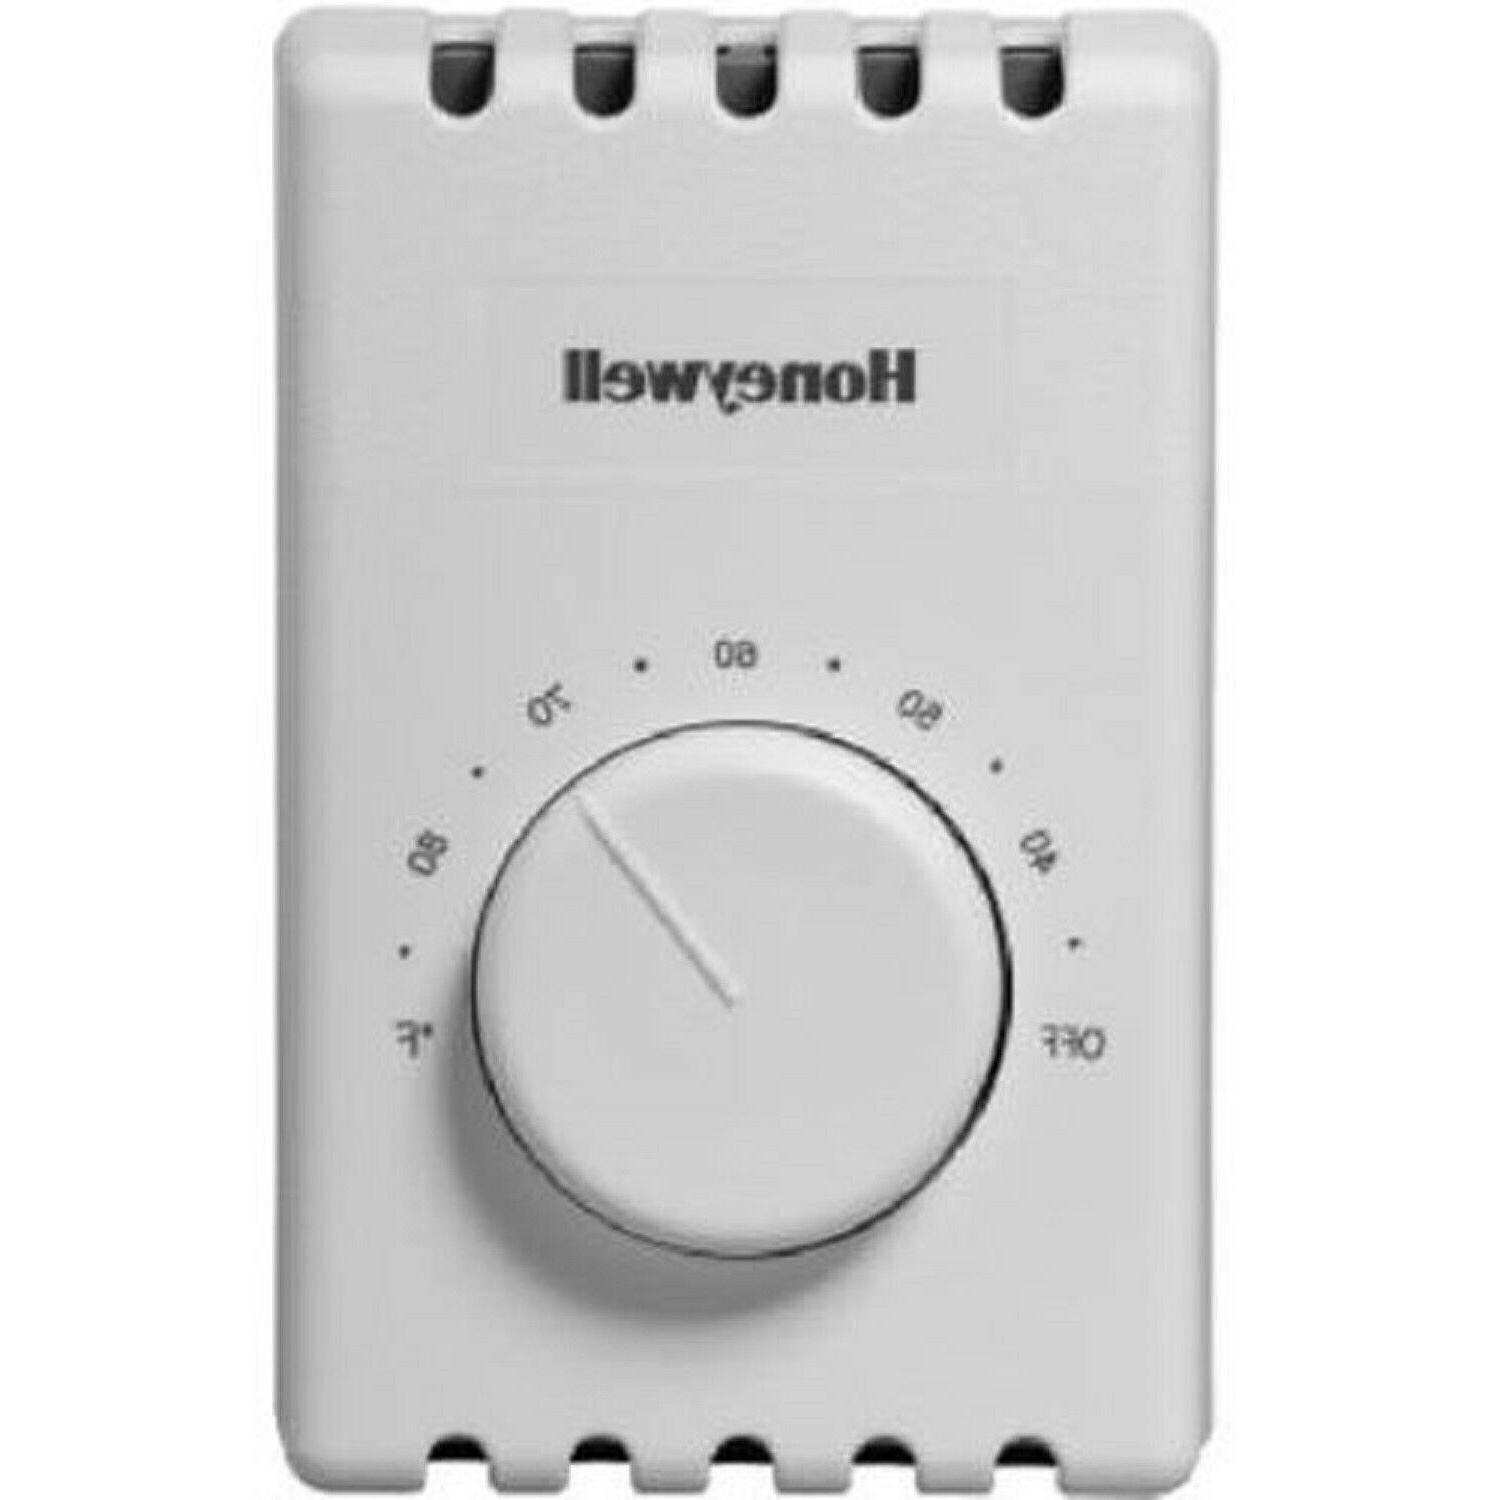 line volt thermostat for electric baseboard heater